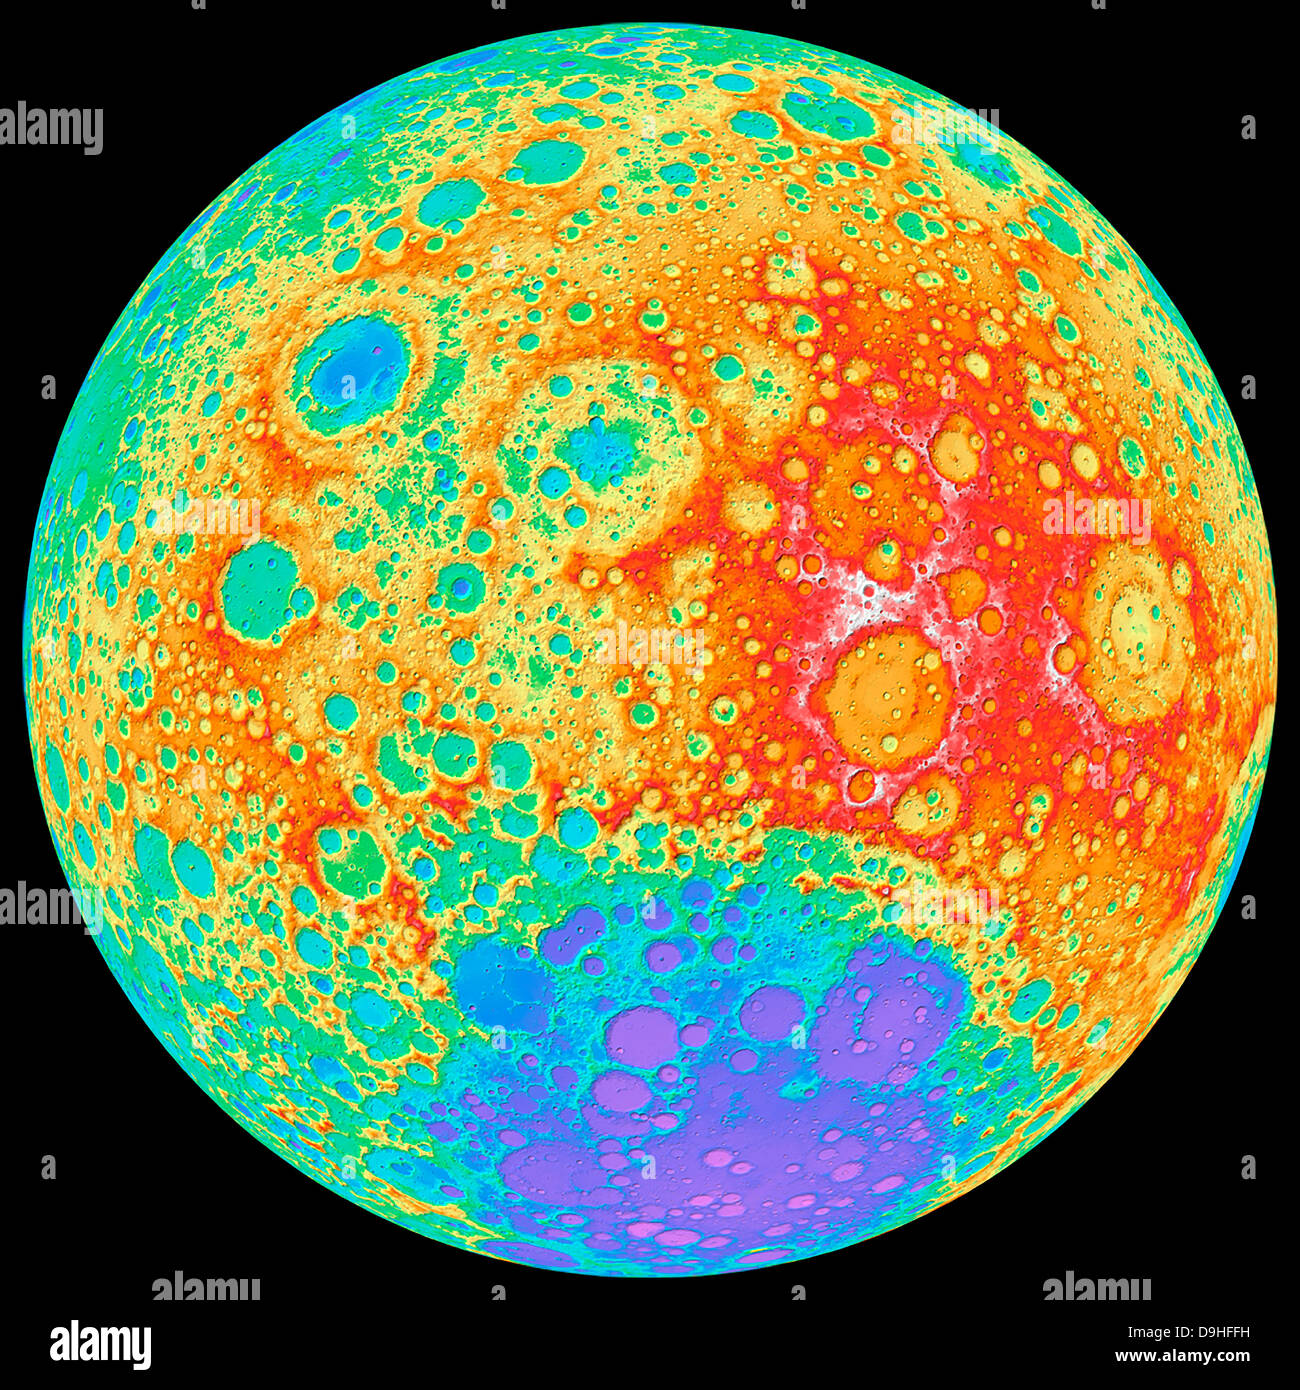 Color shaded relief of the lunar farside. - Stock Image